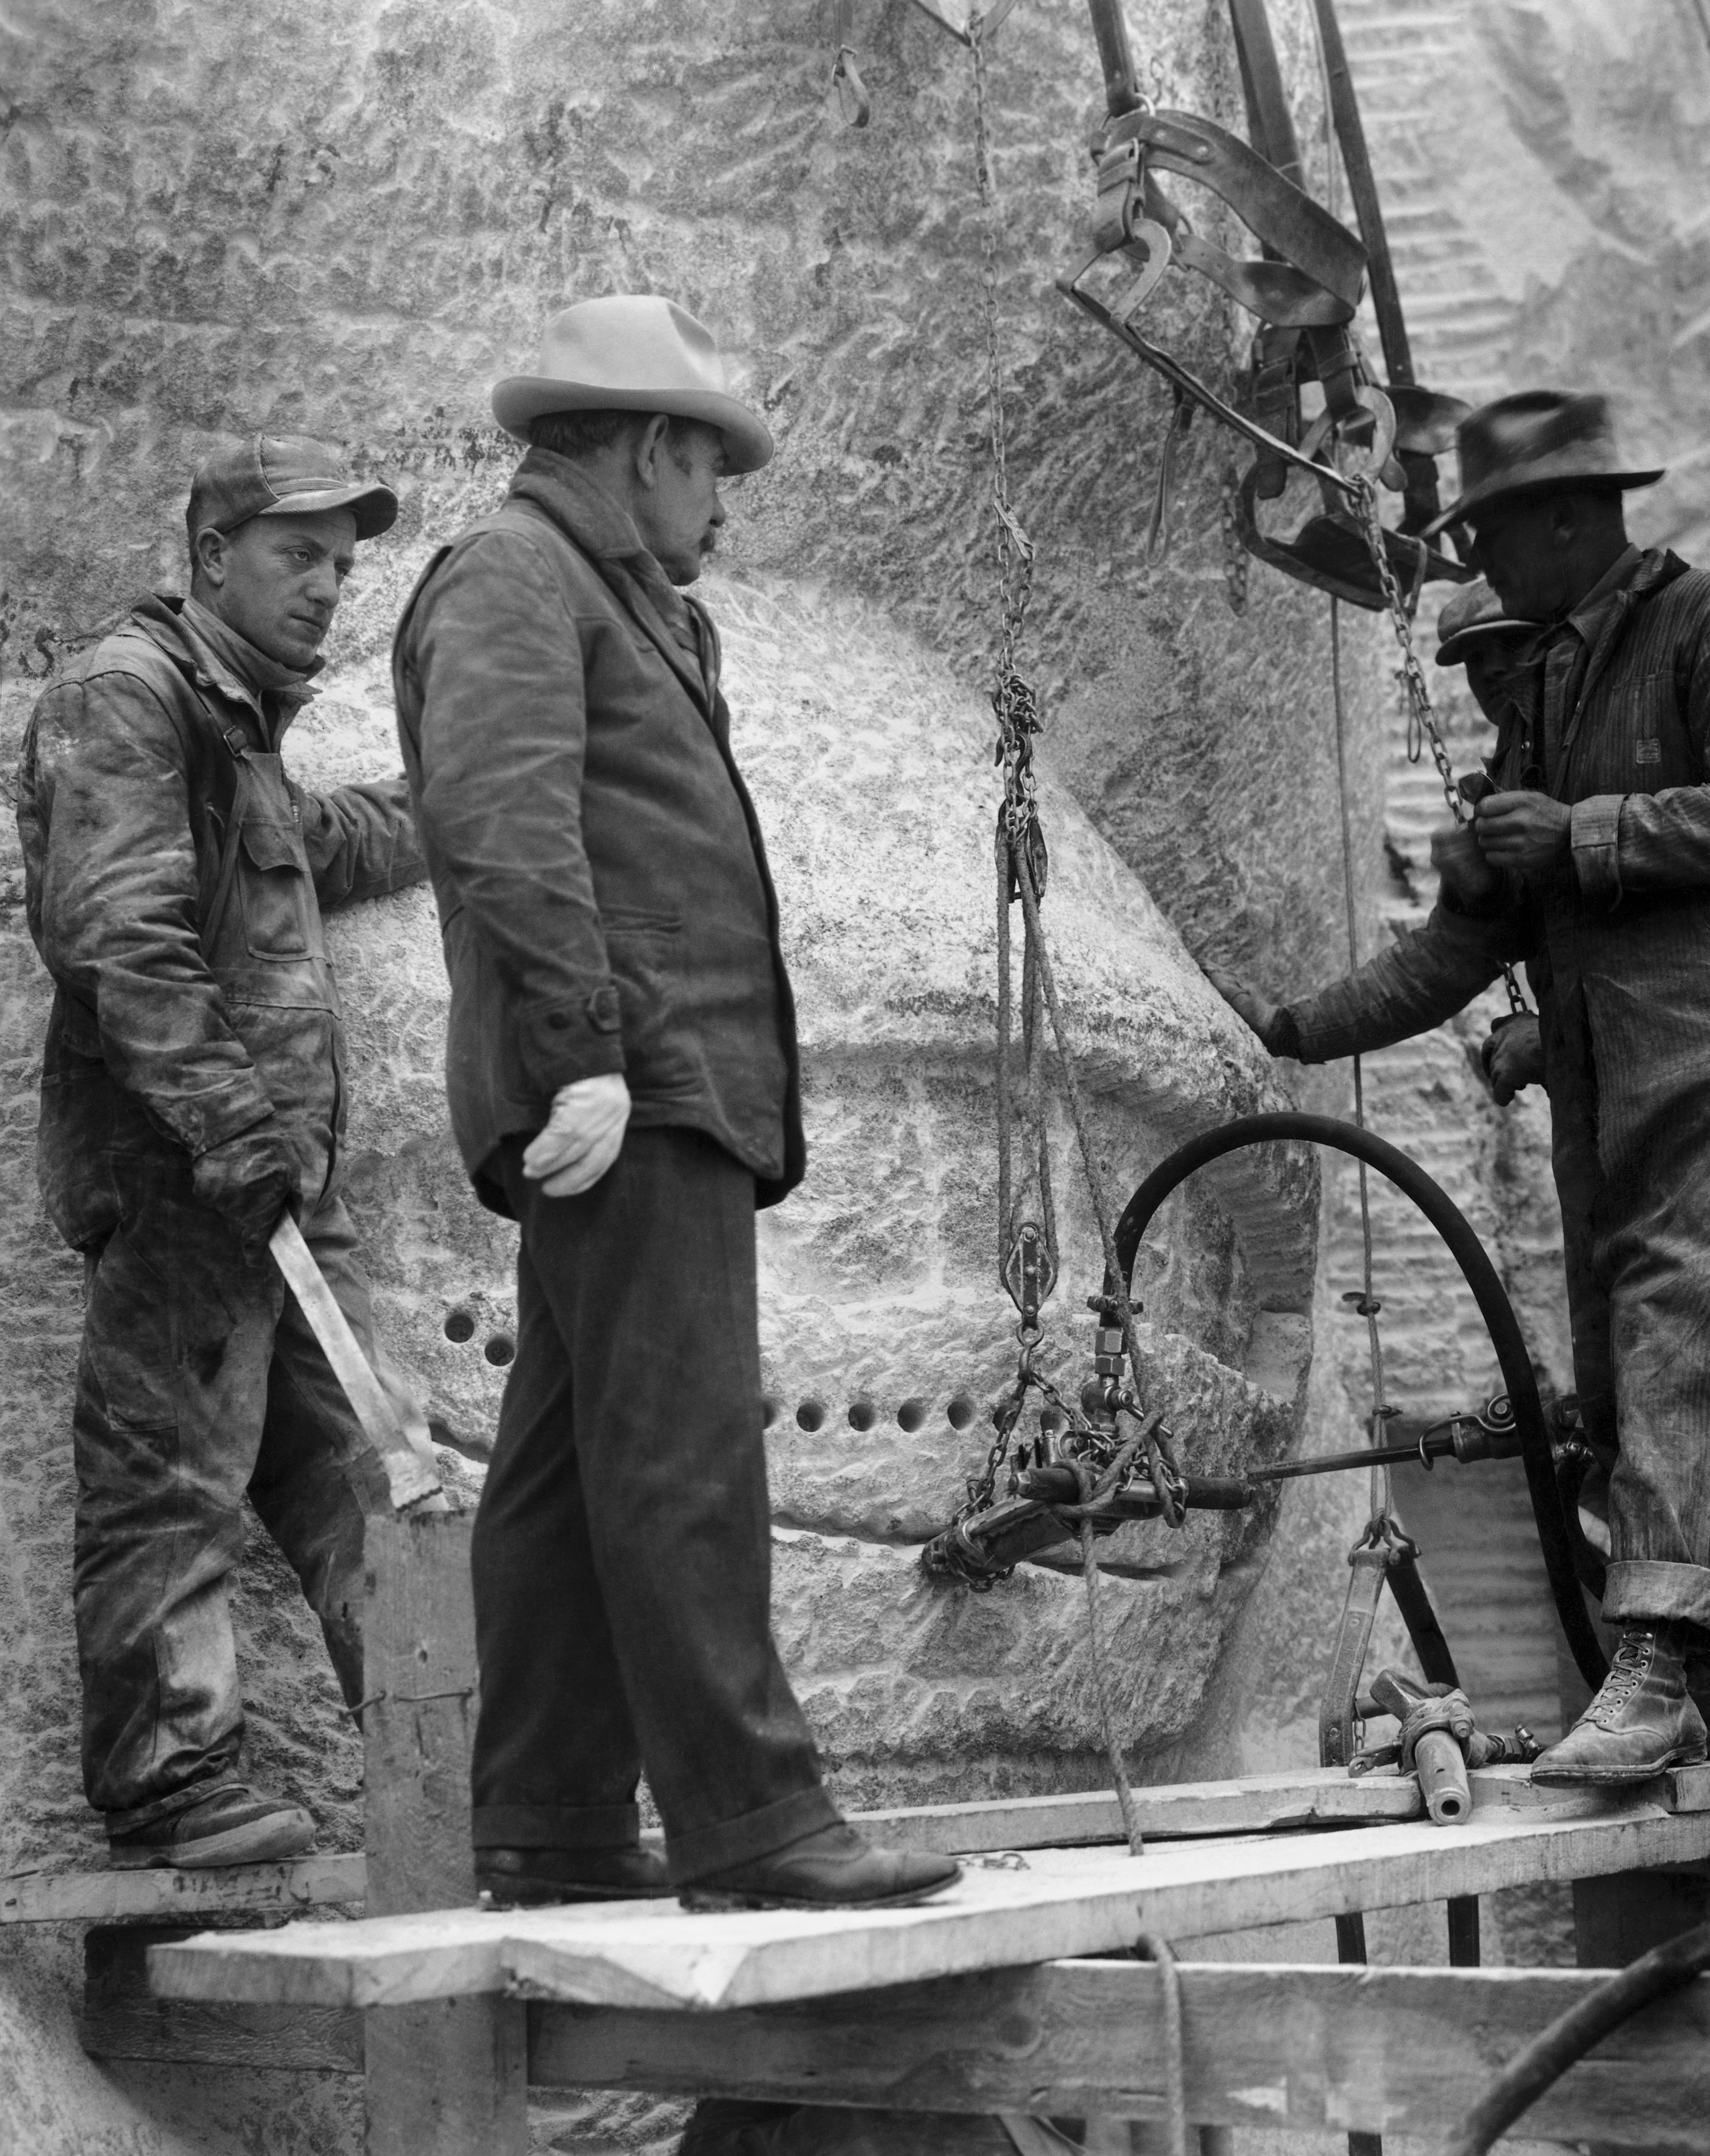 American sculptor Gutzon Borglum (c), who is leading the Mount Rushmore National Memorial project, talks with a group of sculptors while inspecting an eye of one of the presidential heads in the Black Hills area of Keystone, S.D., circa 1930s.